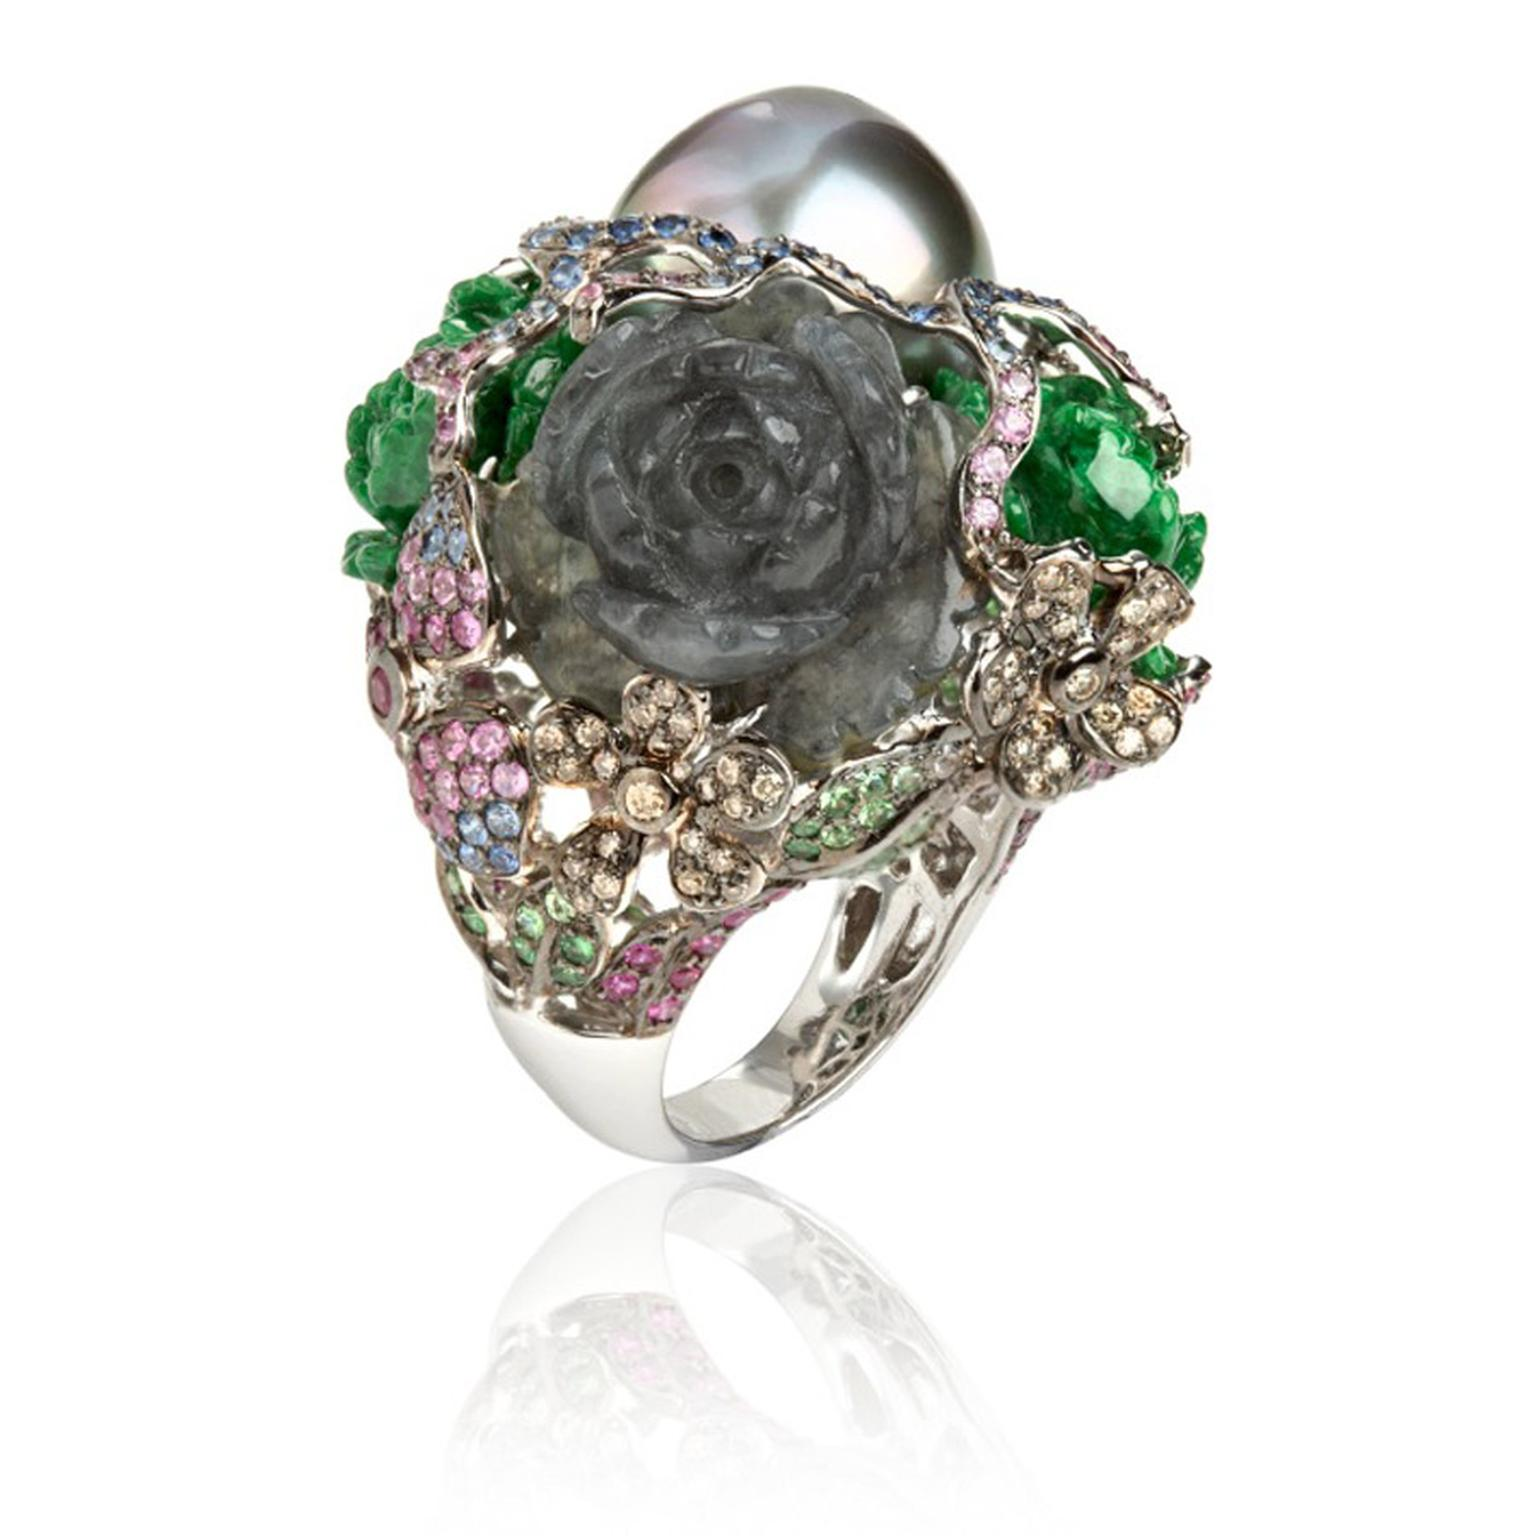 Wendy-Yue-Fantasie-18ct-white-gold-pearl--diamond-sapphires-garnetjade-and-tourmaline-Perilous-Pearl-ring-By-Wendy--Yue-for-Annoushka